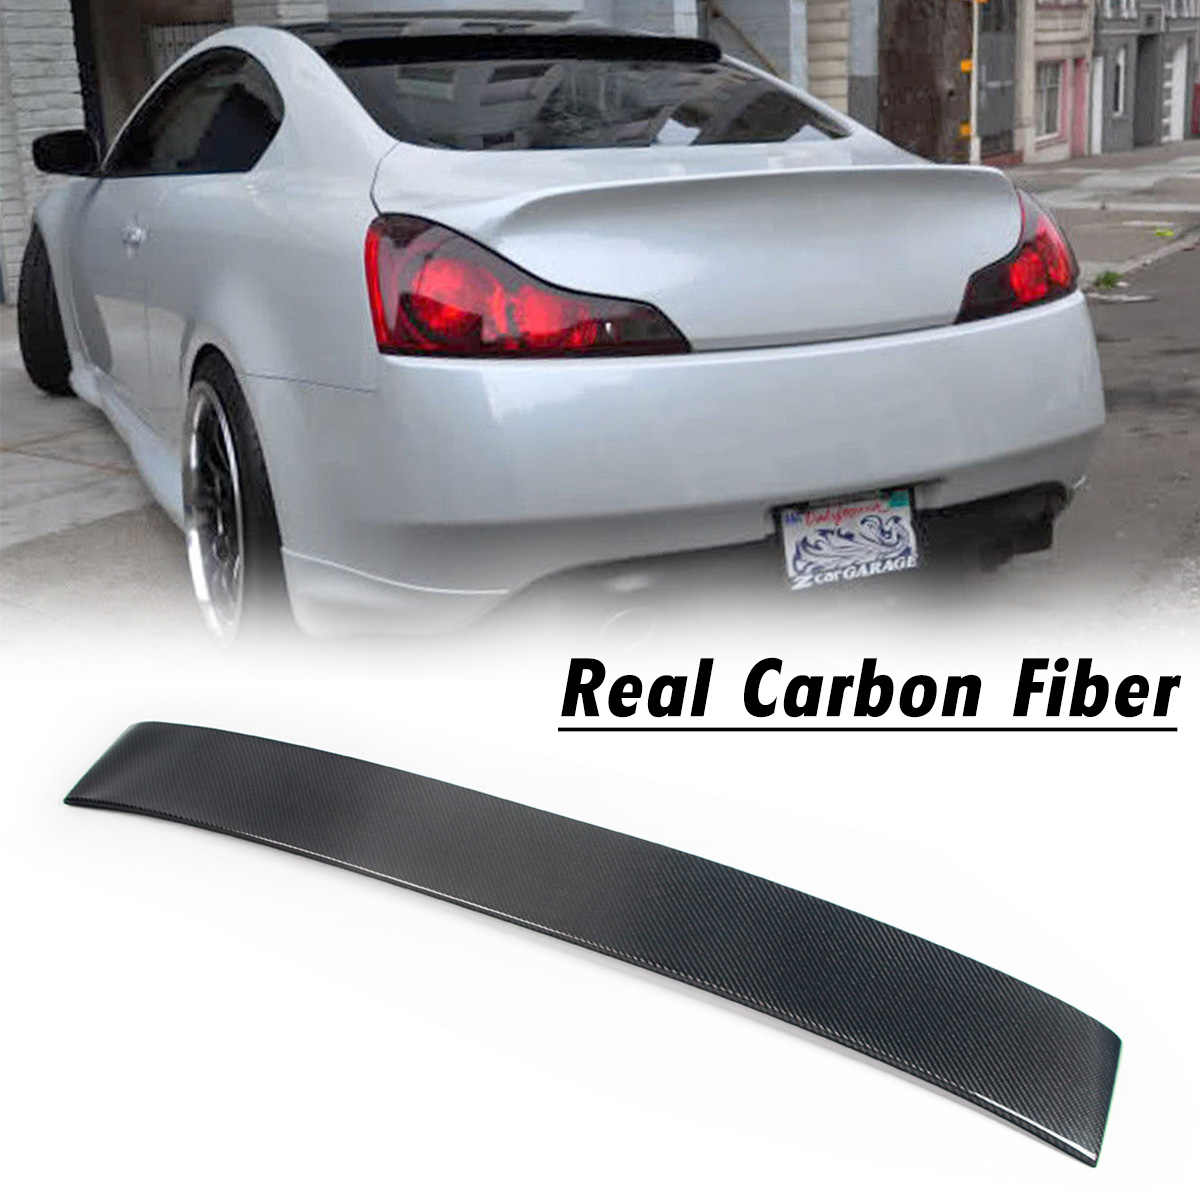 Real Carbon Fiber Rear Roof Lip Spoiler Tail Trunk Boot Wing Cover Accessories For Infiniti G37 2 Door Coupe Model 2007-2014